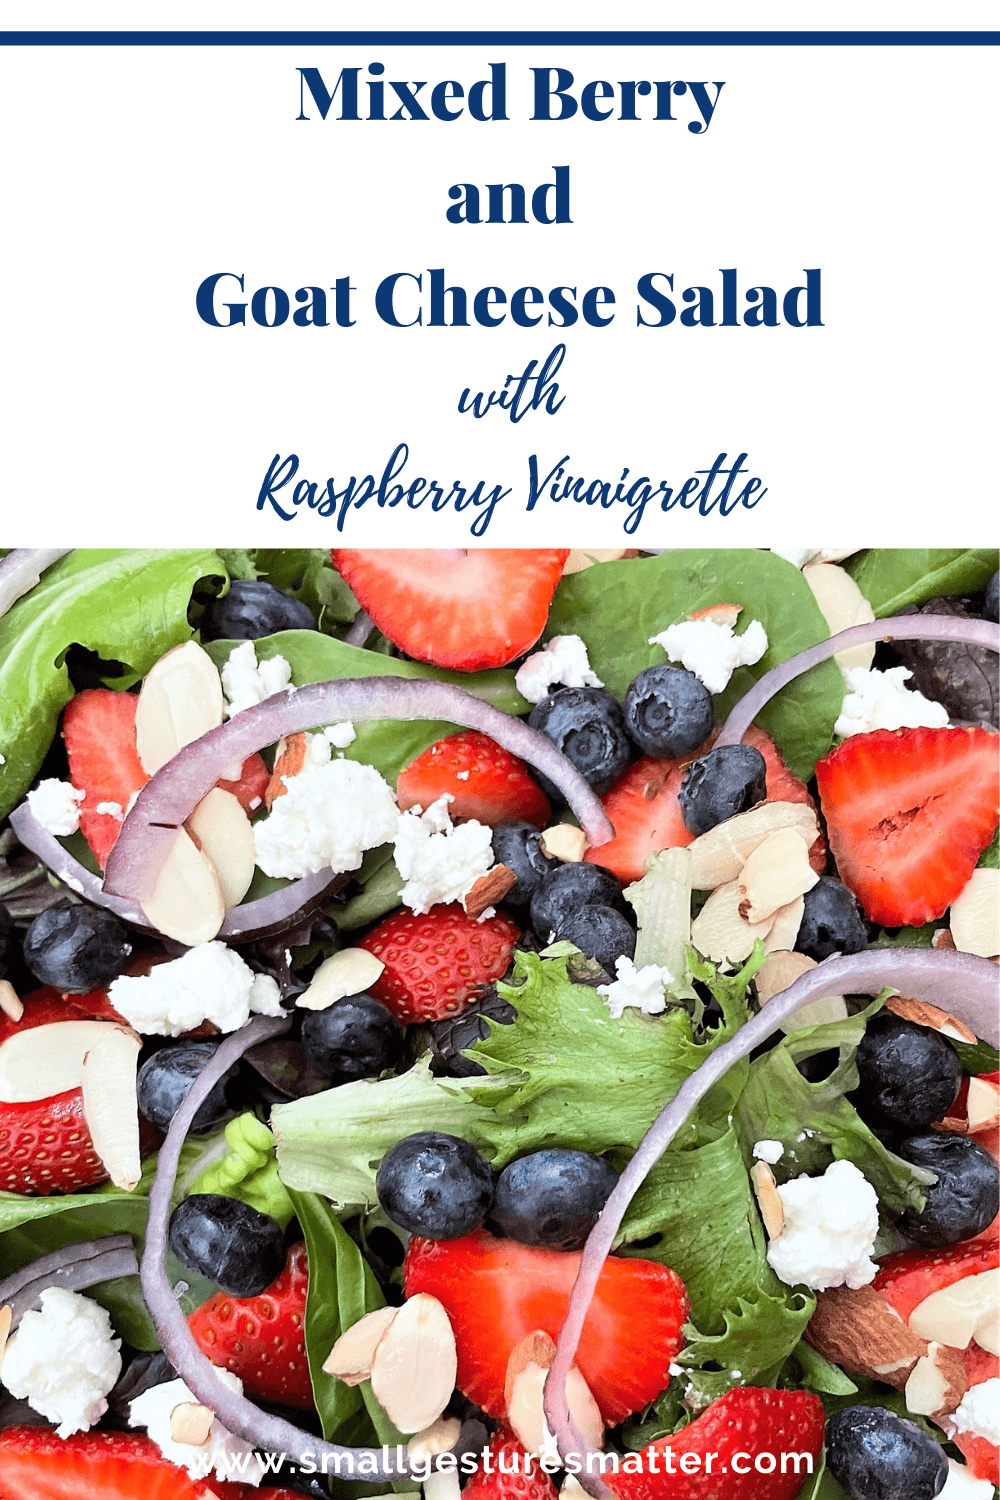 Mixed Berry and Goat Cheese Salad with Raspberry Vinaigrette